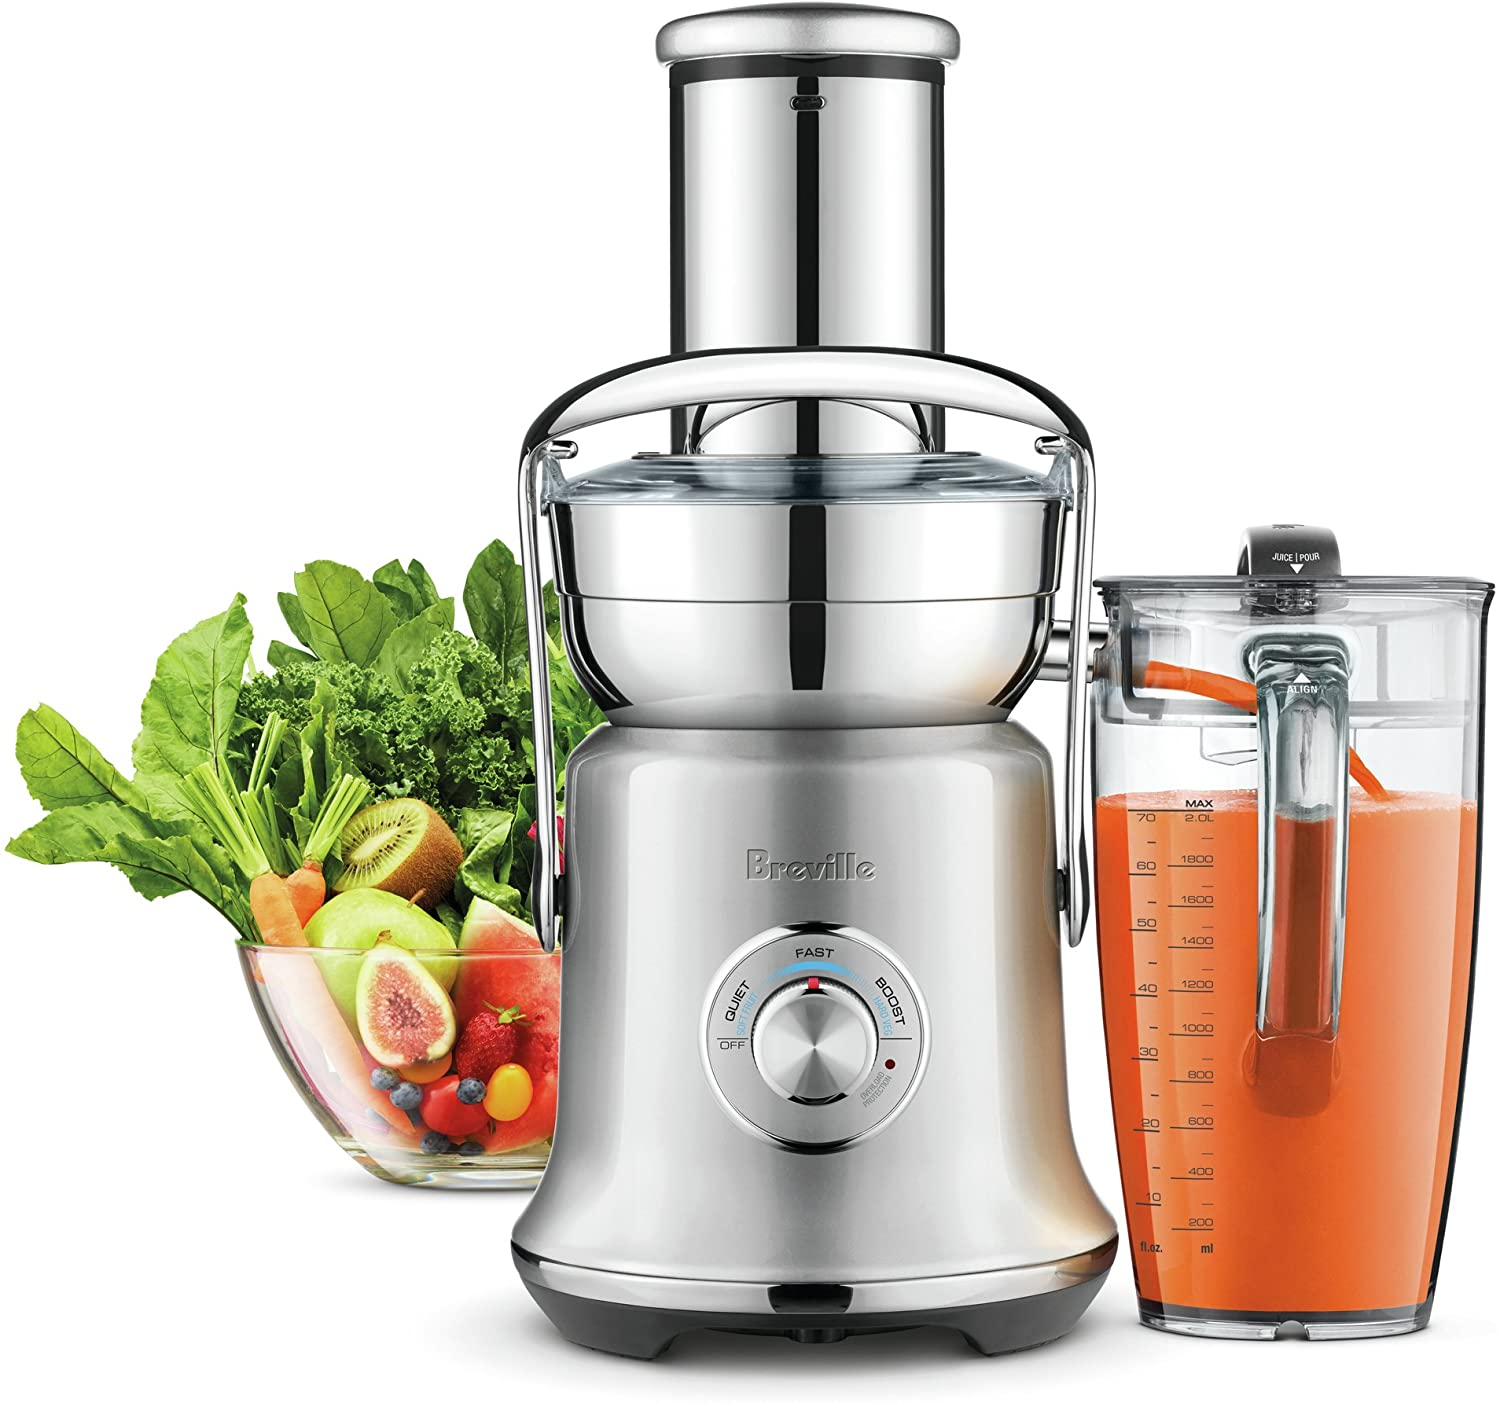 Breveille-Centrifugal-Raw-Juicer-Amazon